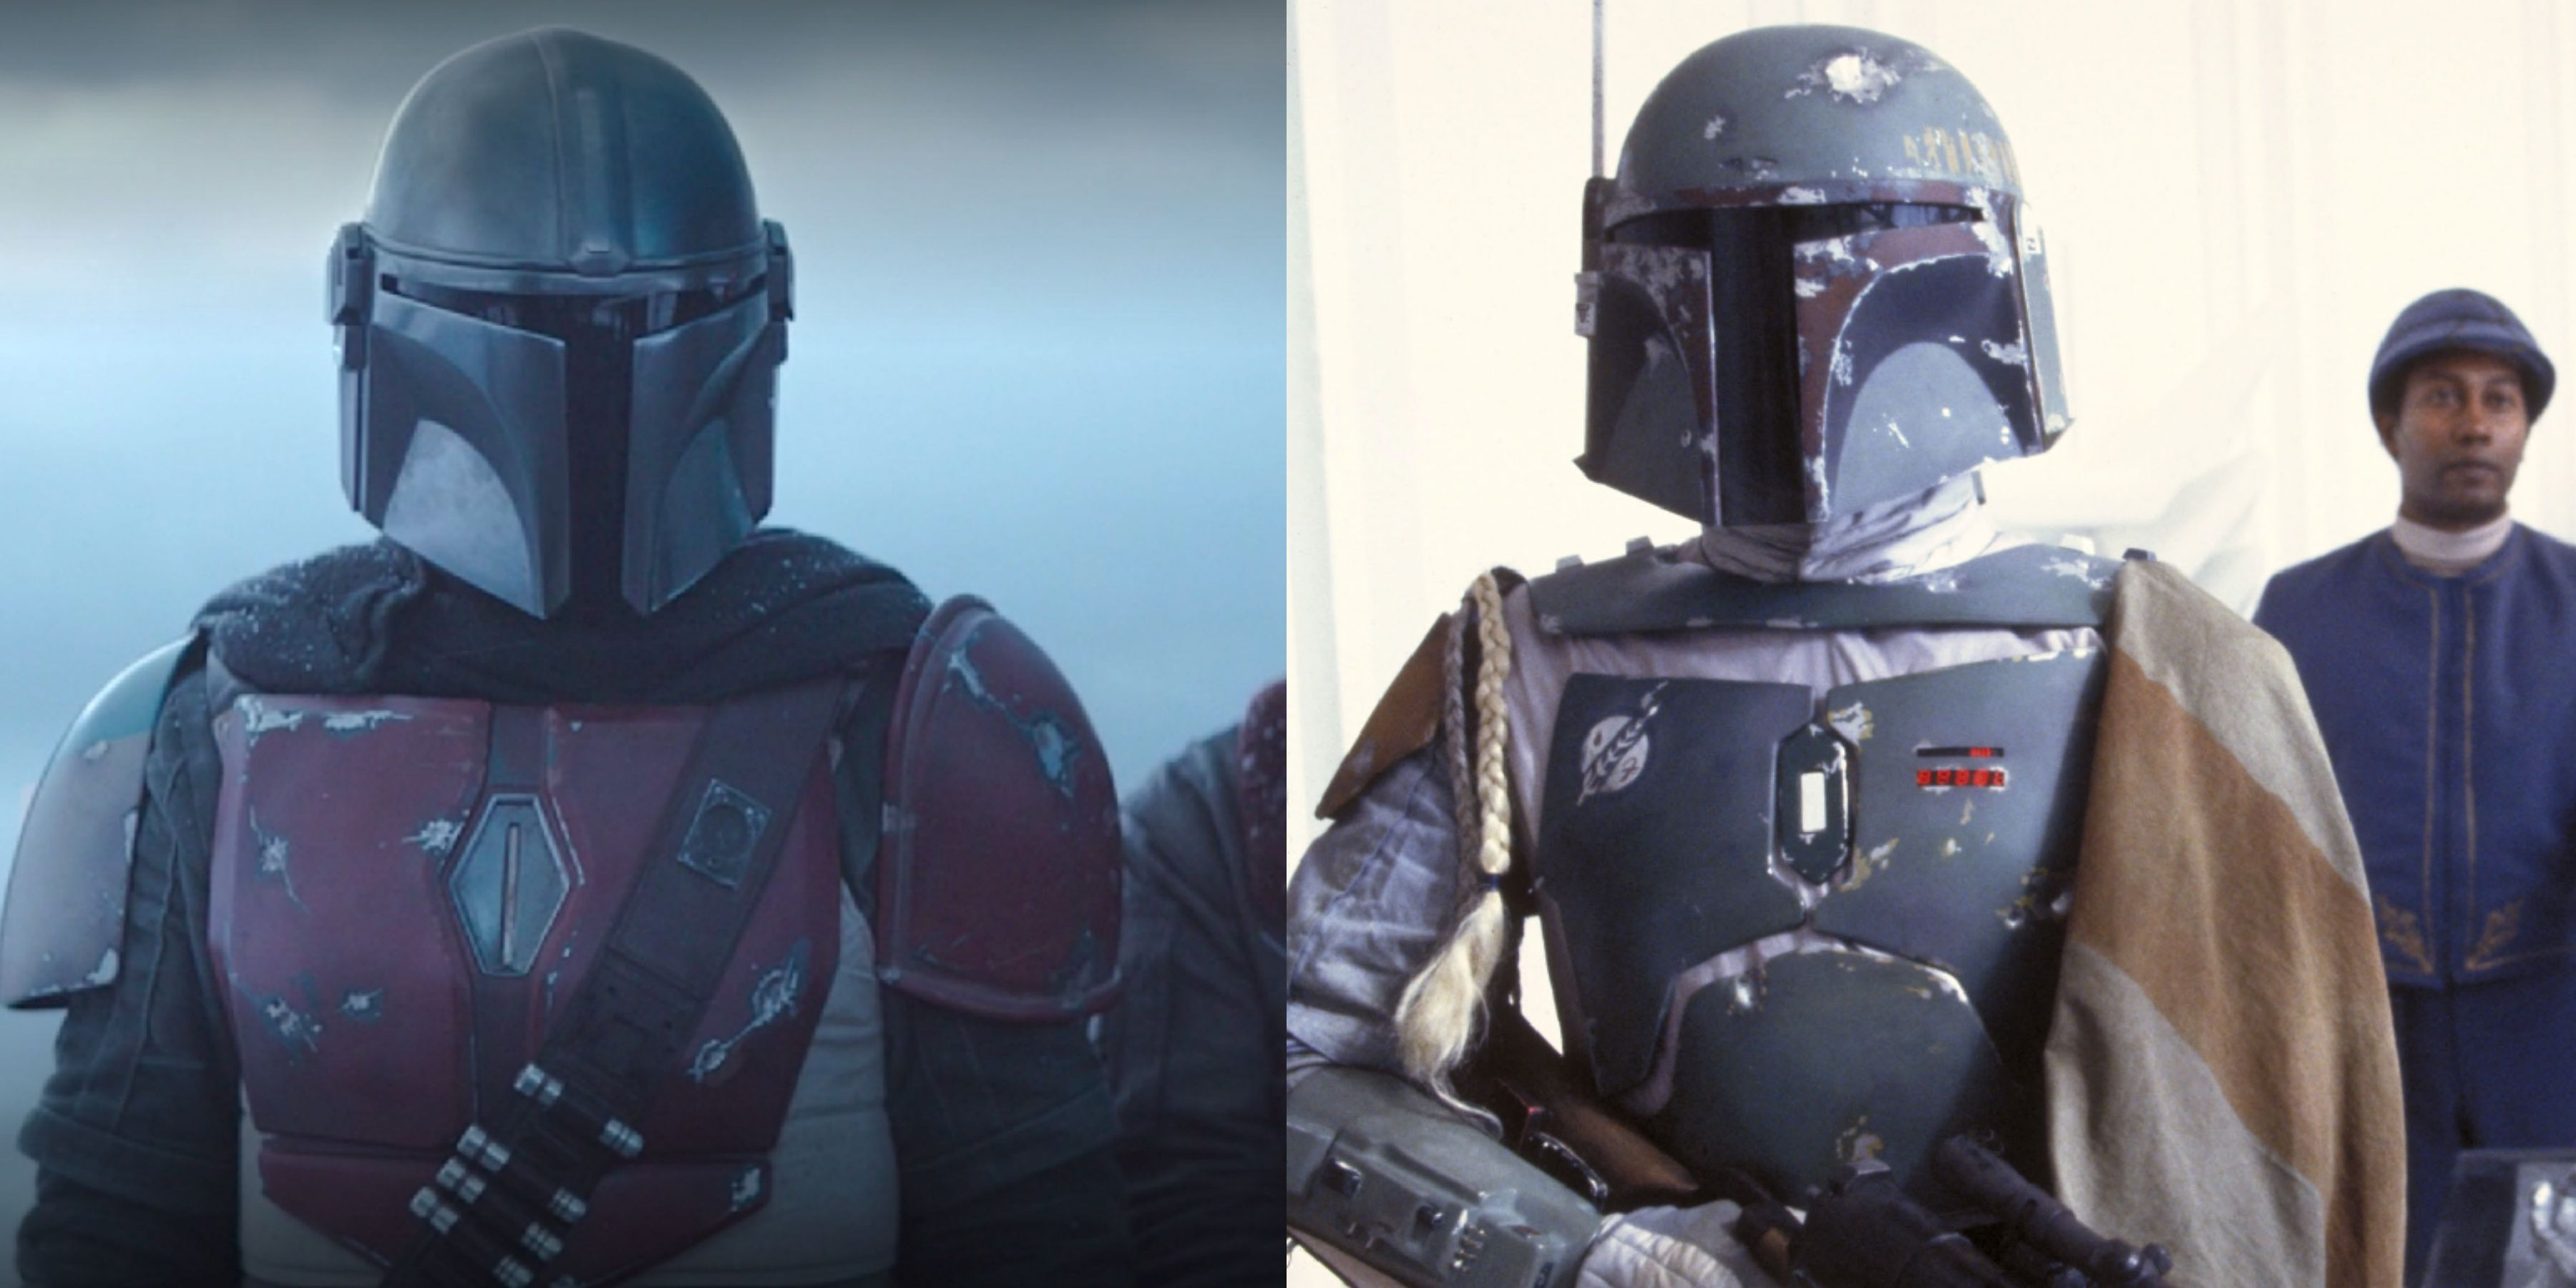 How The Mandalorian Explores the Armor Made Famous By Boba Fett